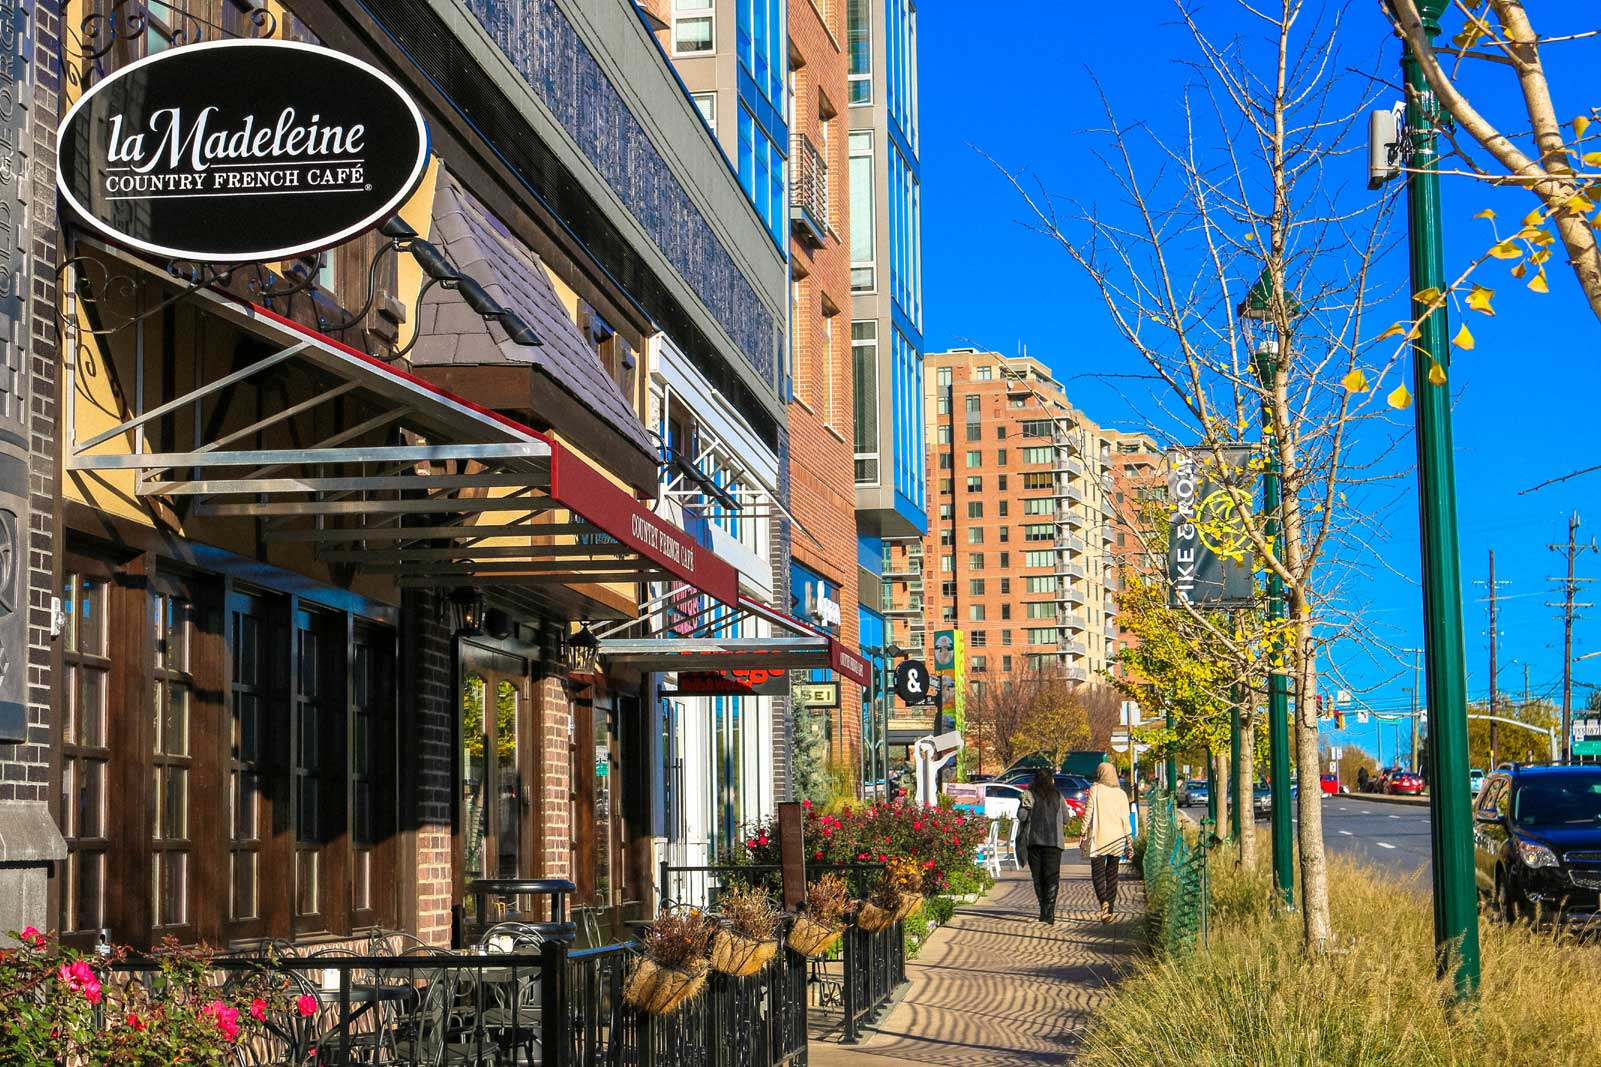 La Madeleine and shops in North Bethesda, MD